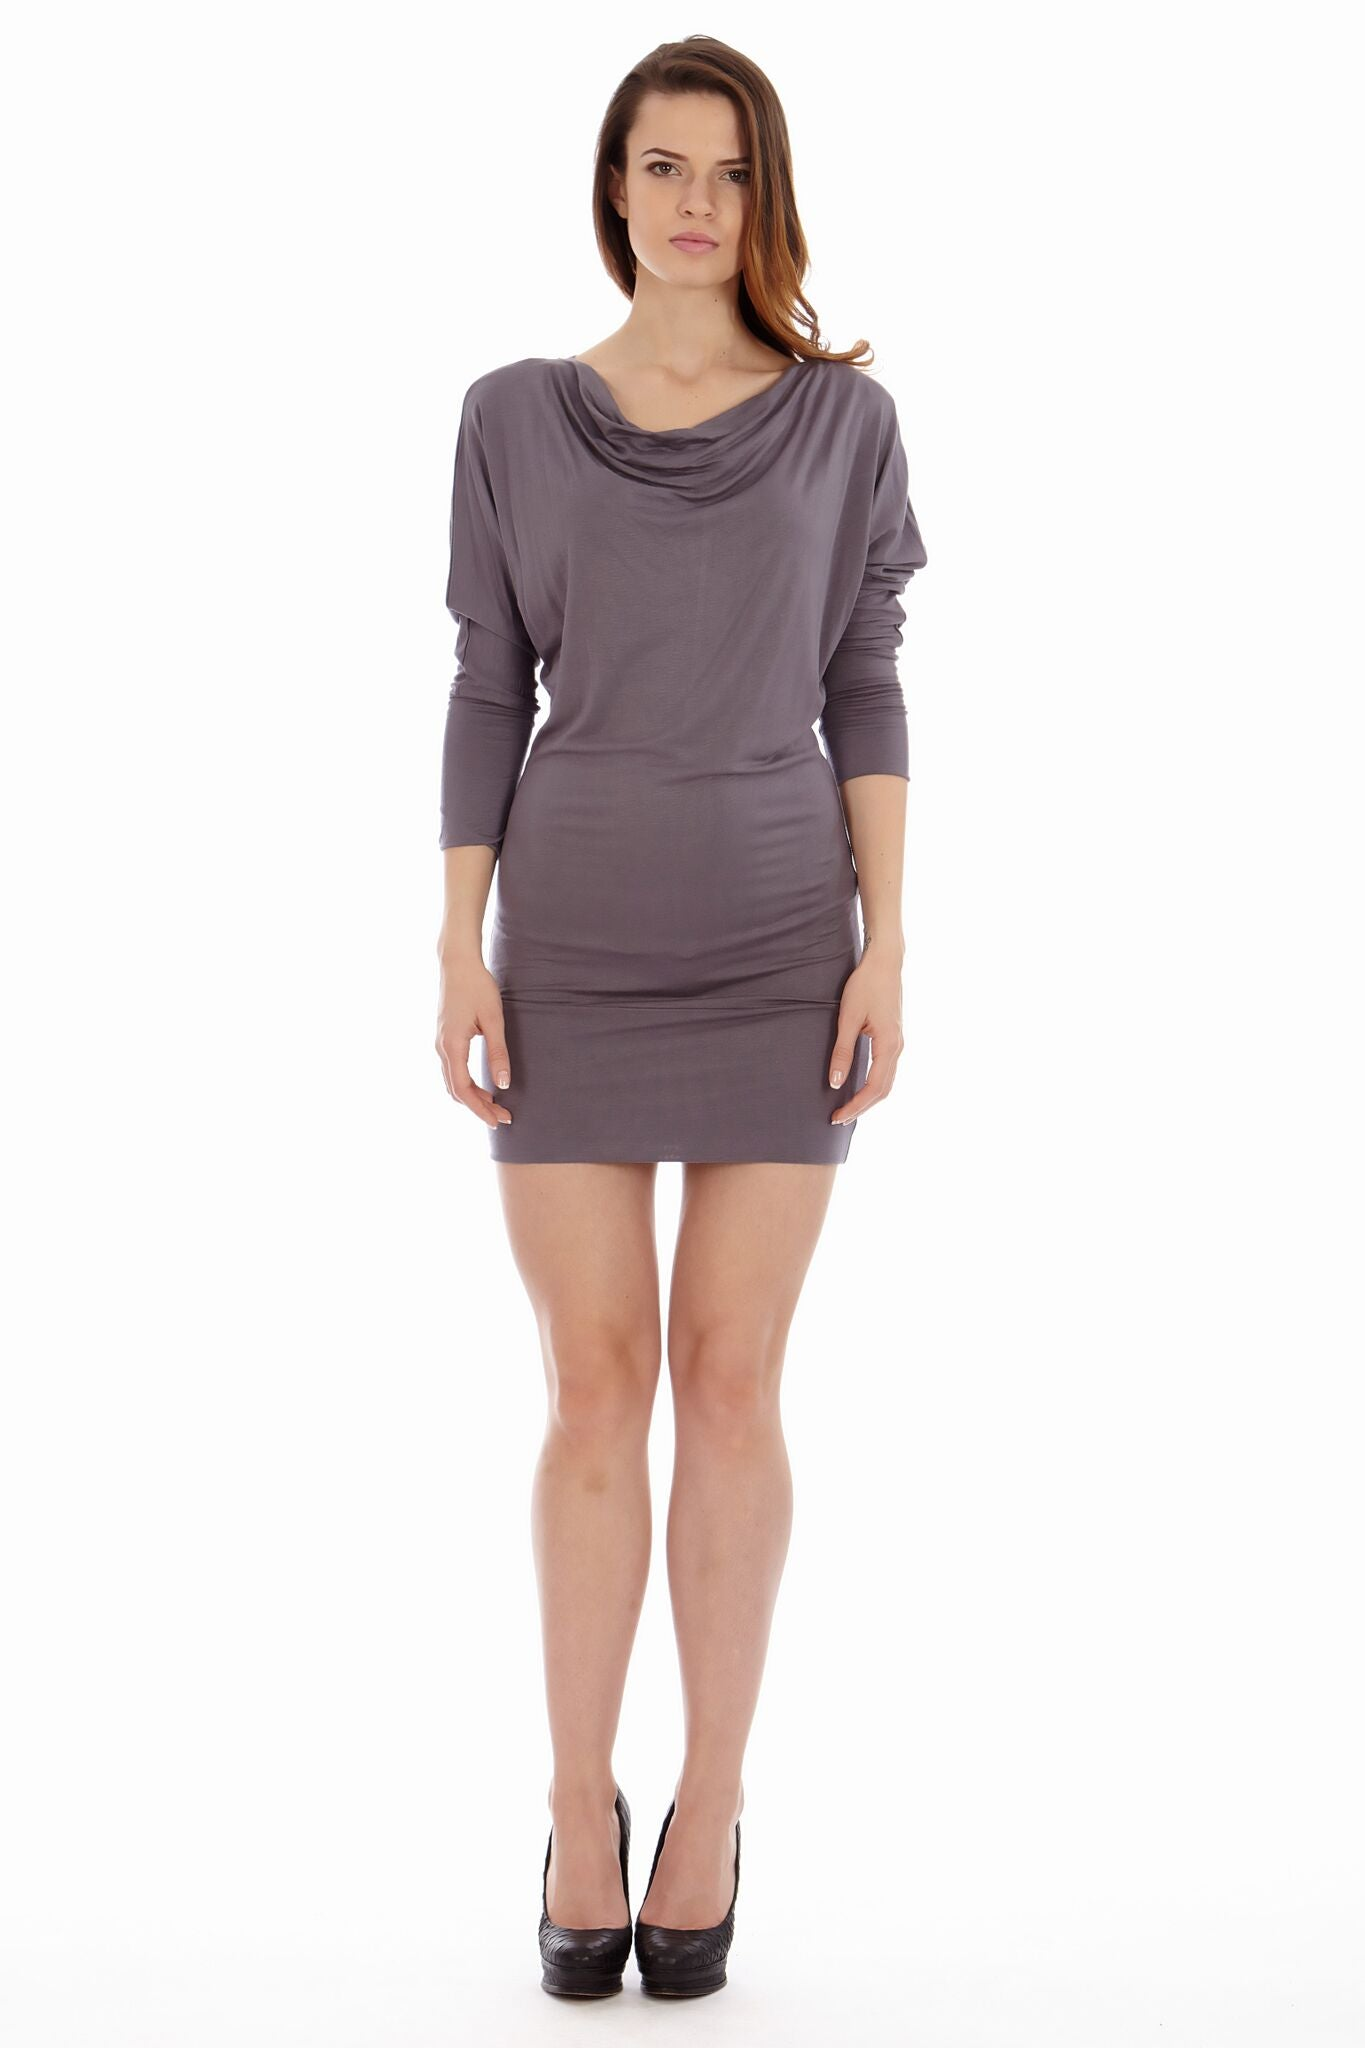 Gray Cowl Neck Dress